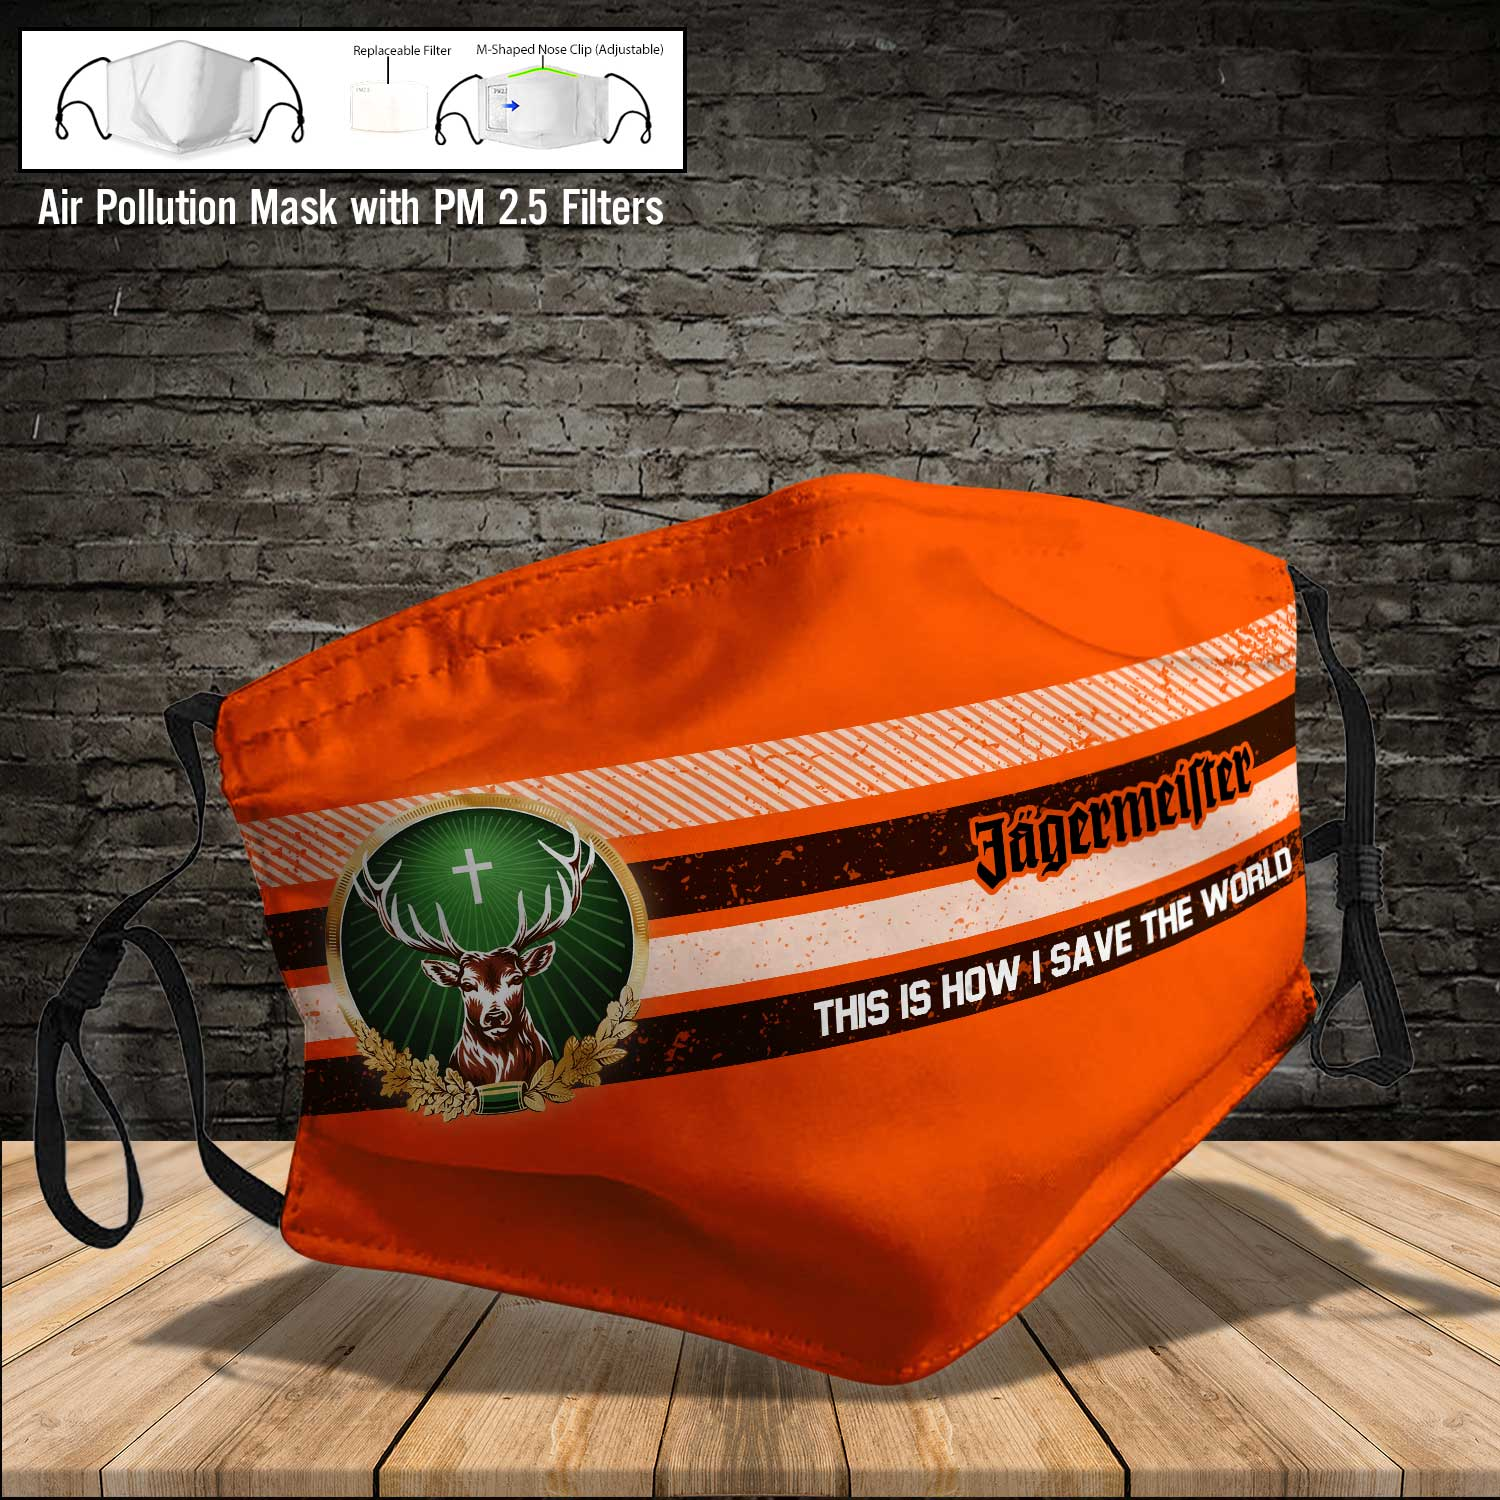 Jagermeister this is how i save the world full printing face mask 4